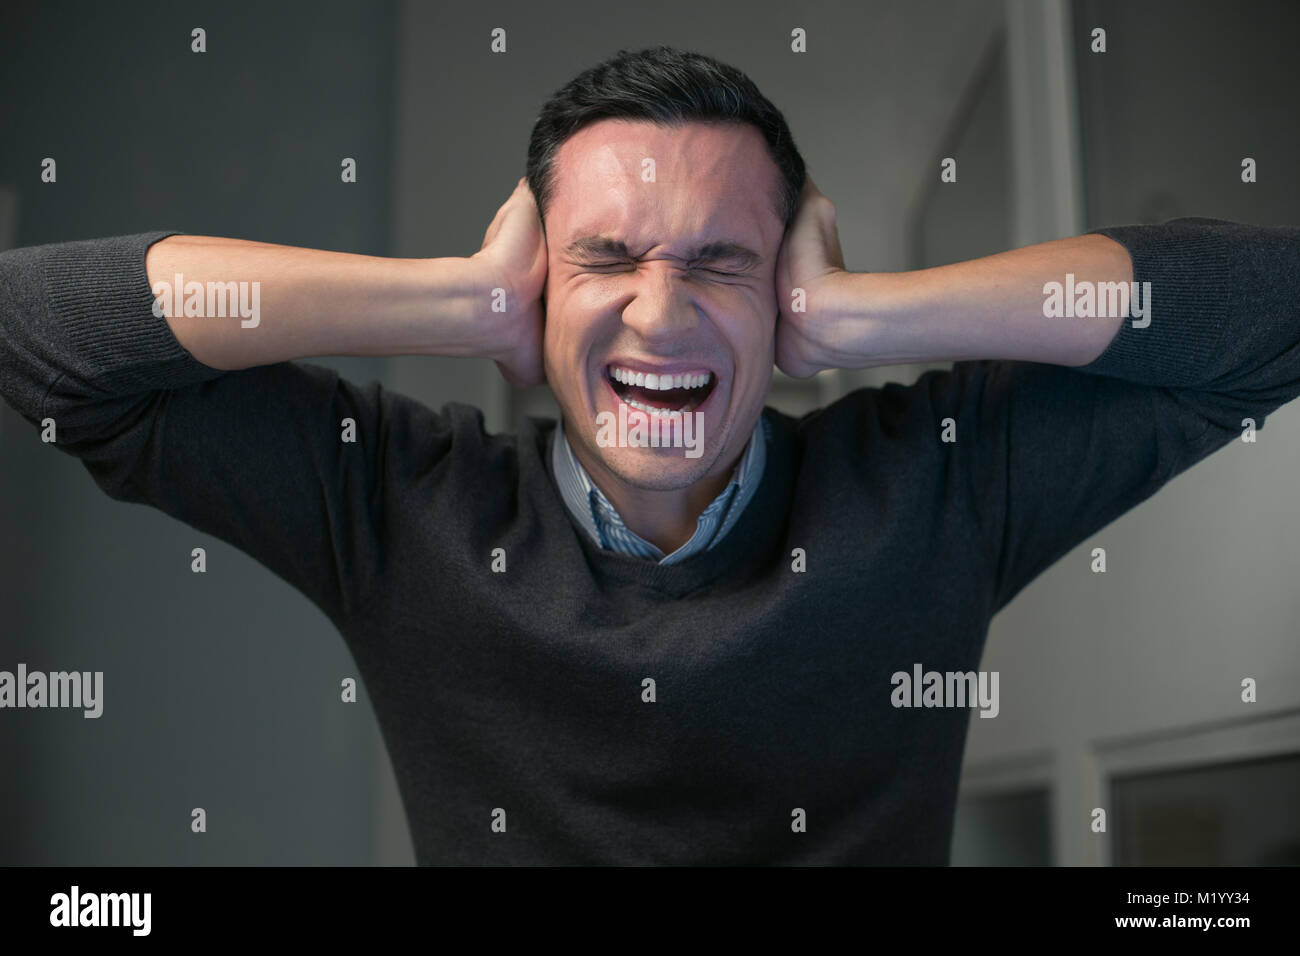 Desperate young man yelling loudly - Stock Image